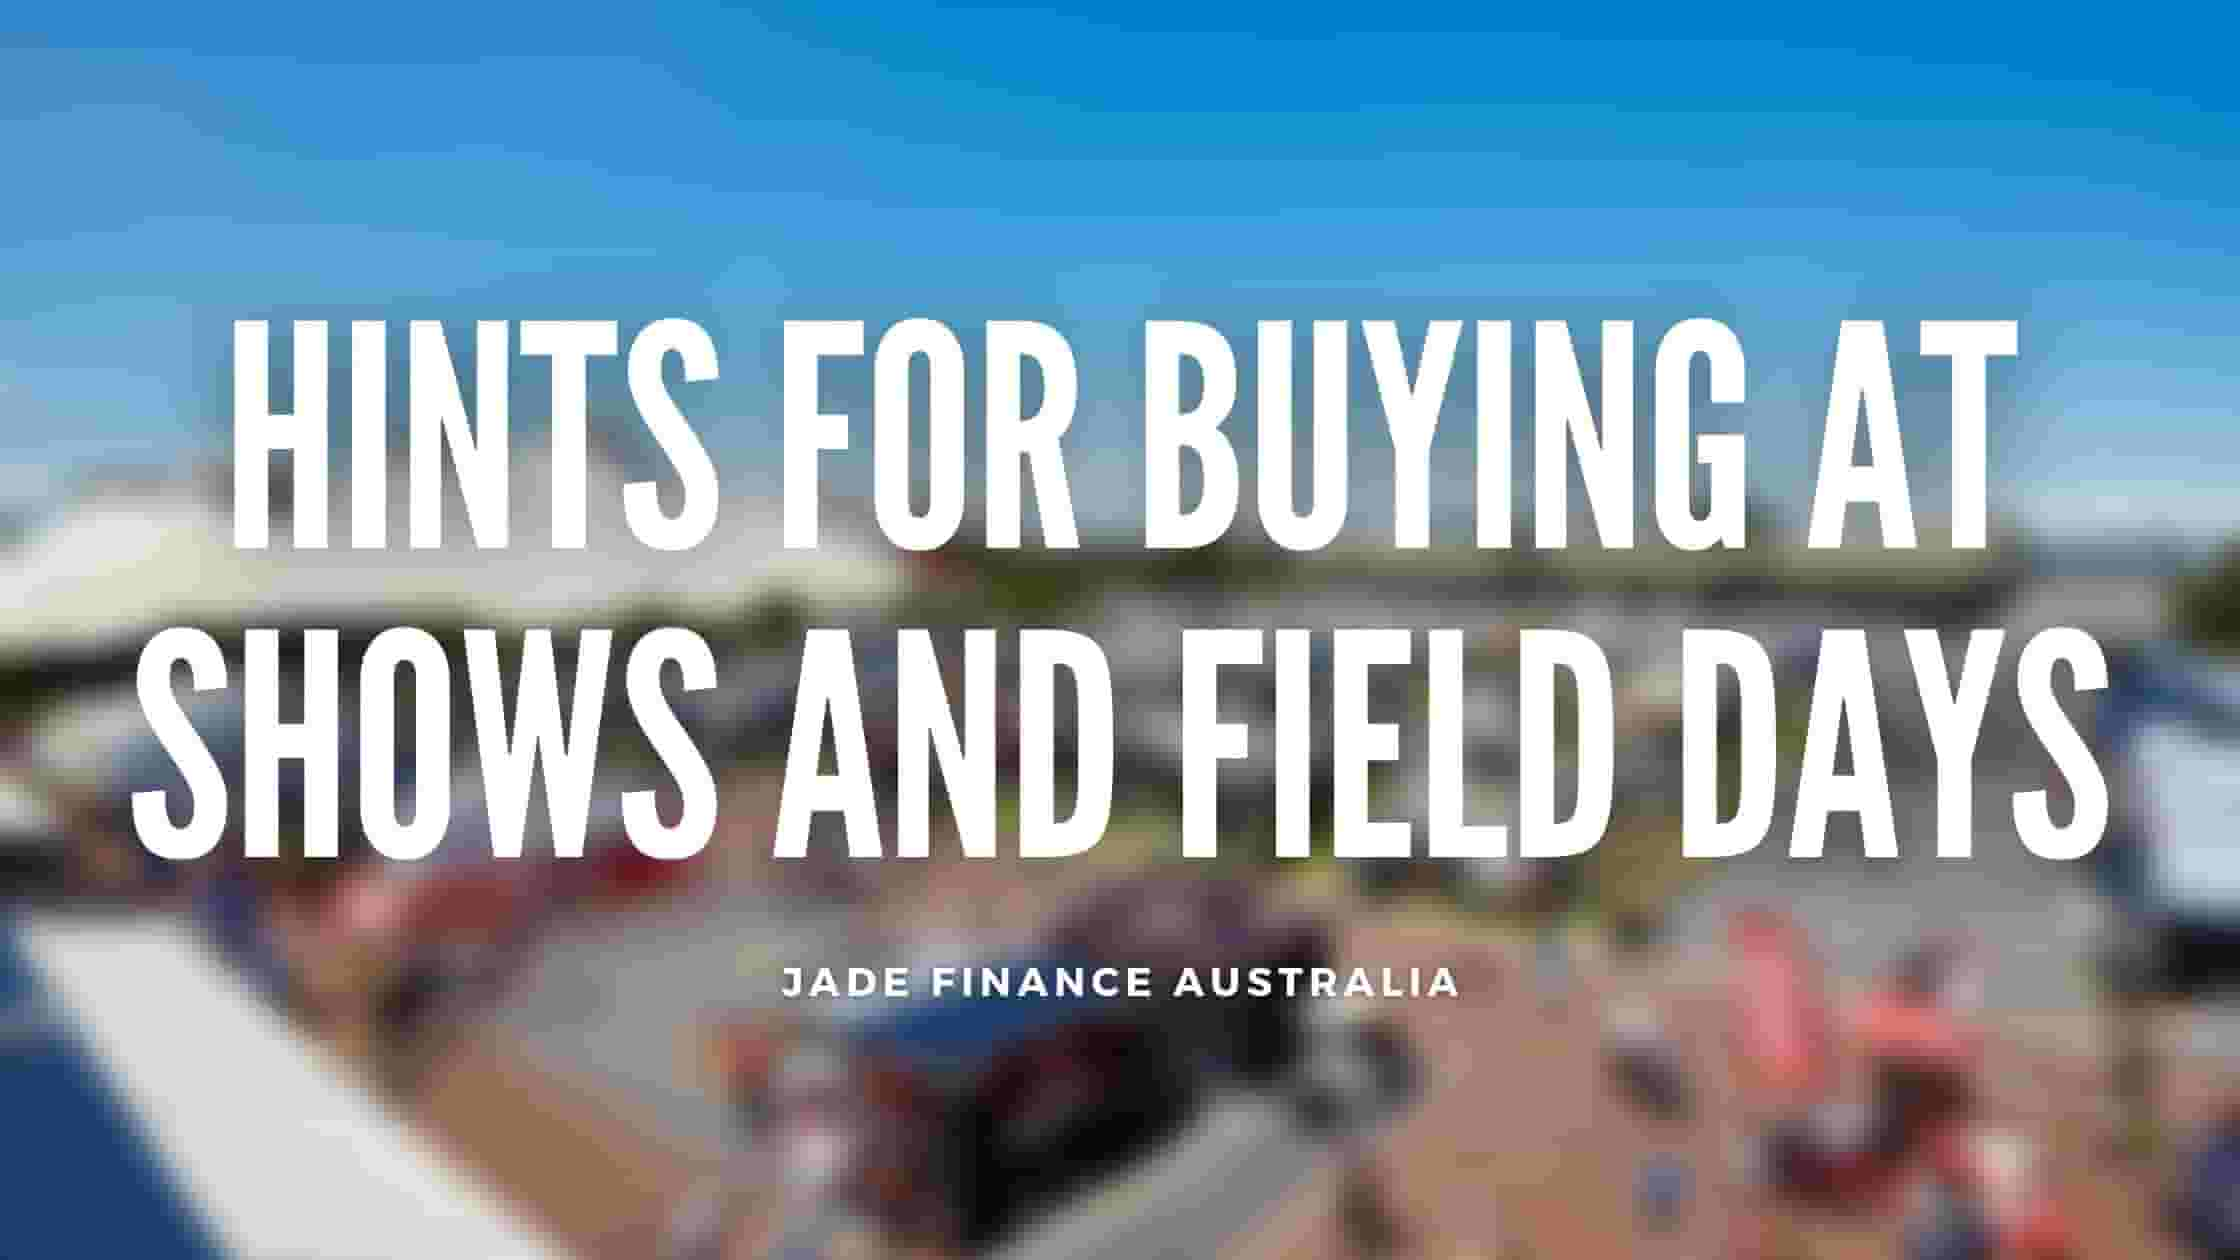 Hints for Buying at Shows and Field Days